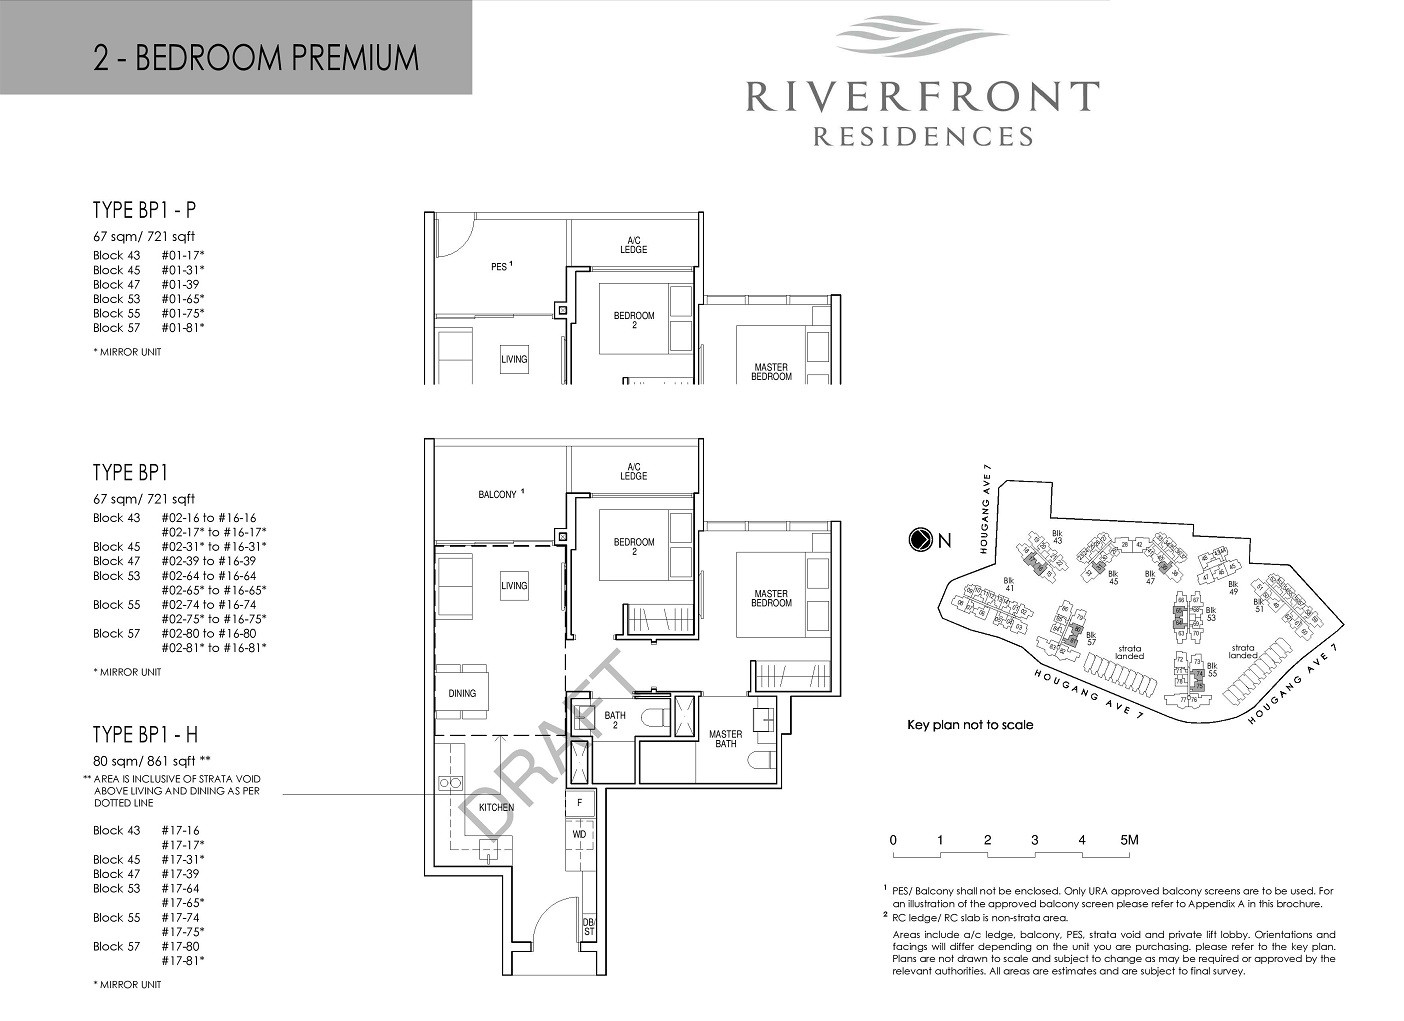 Riverfront Residences 2 Bedroom Premium